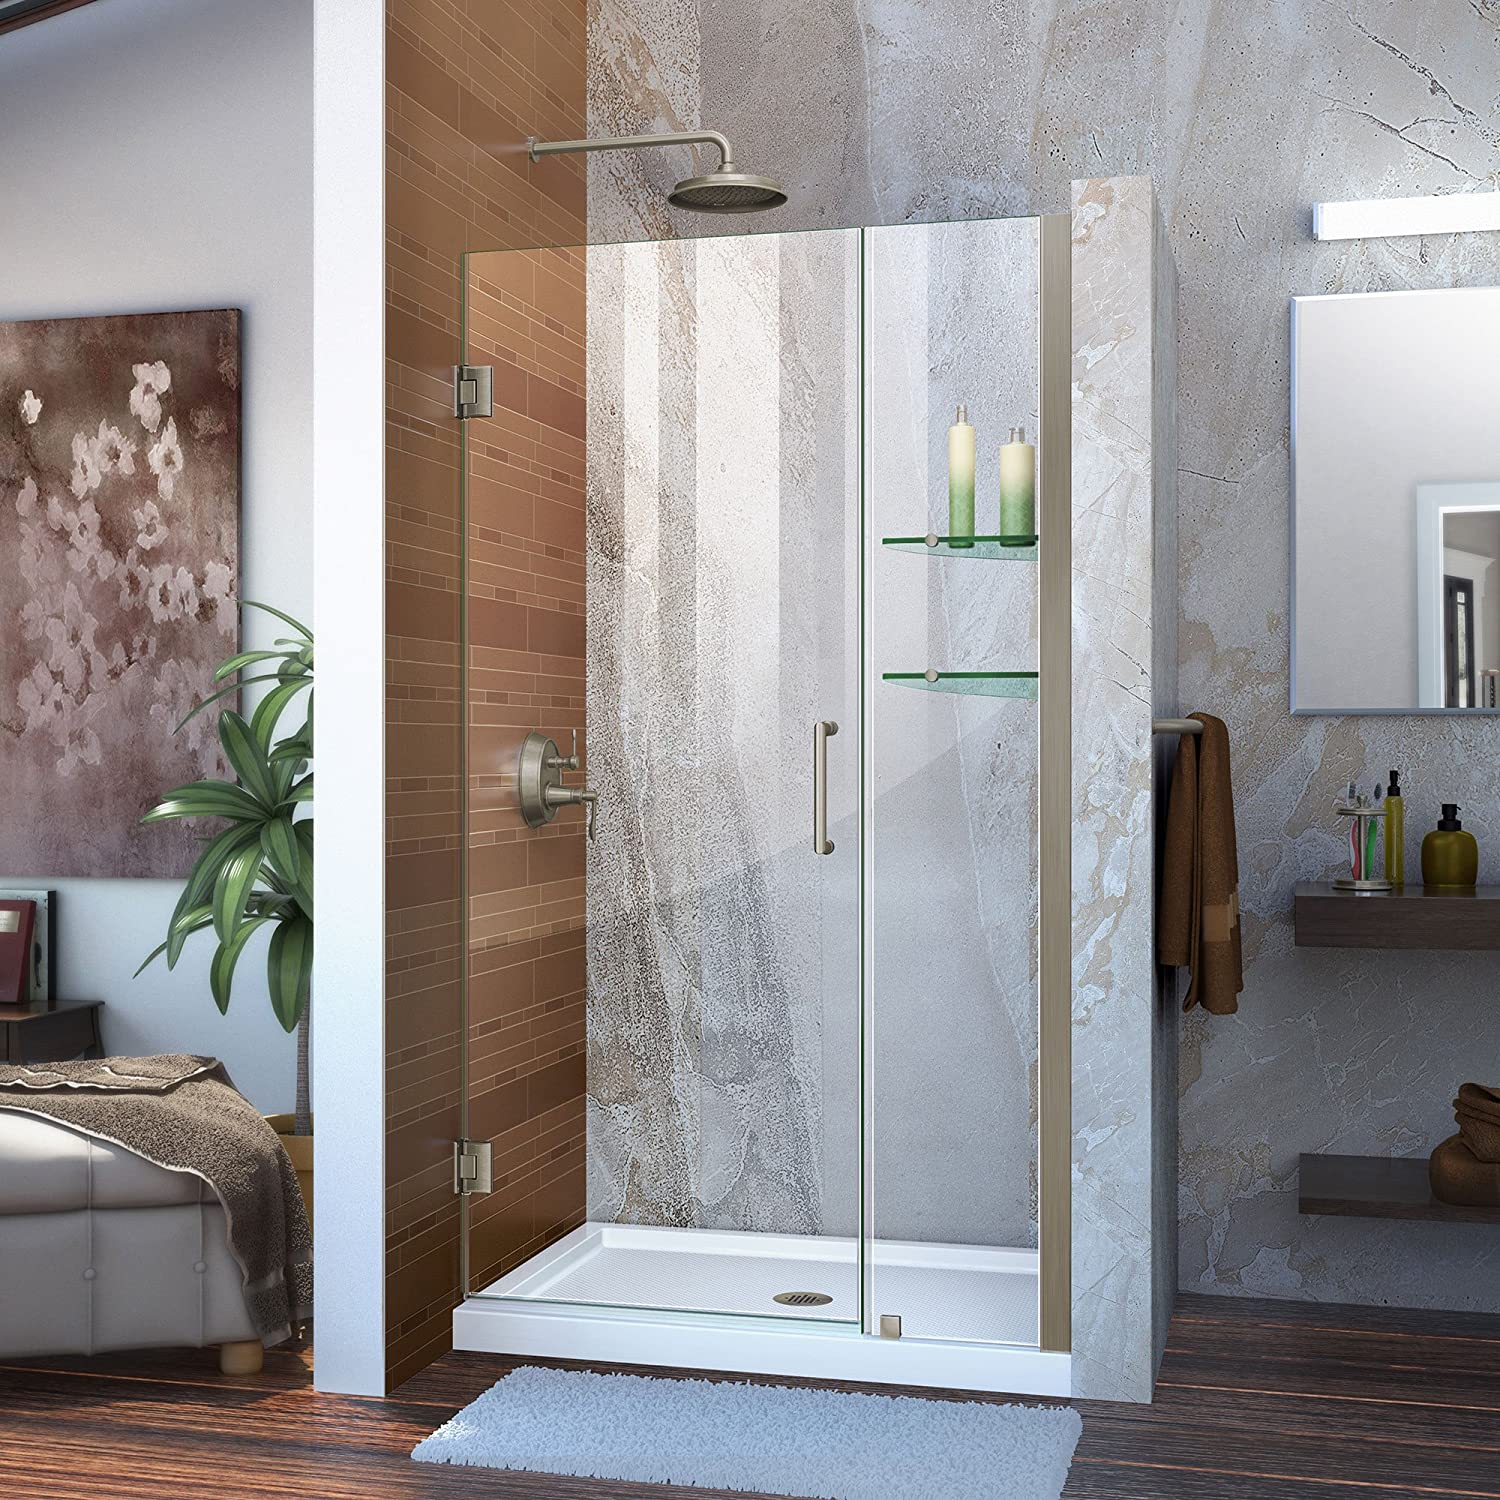 DreamLine Unidoor 39-40 in. W x 72 in. H Frameless Hinged Shower Door with Shelves in Brushed Nickel, SHDR-20397210S-04